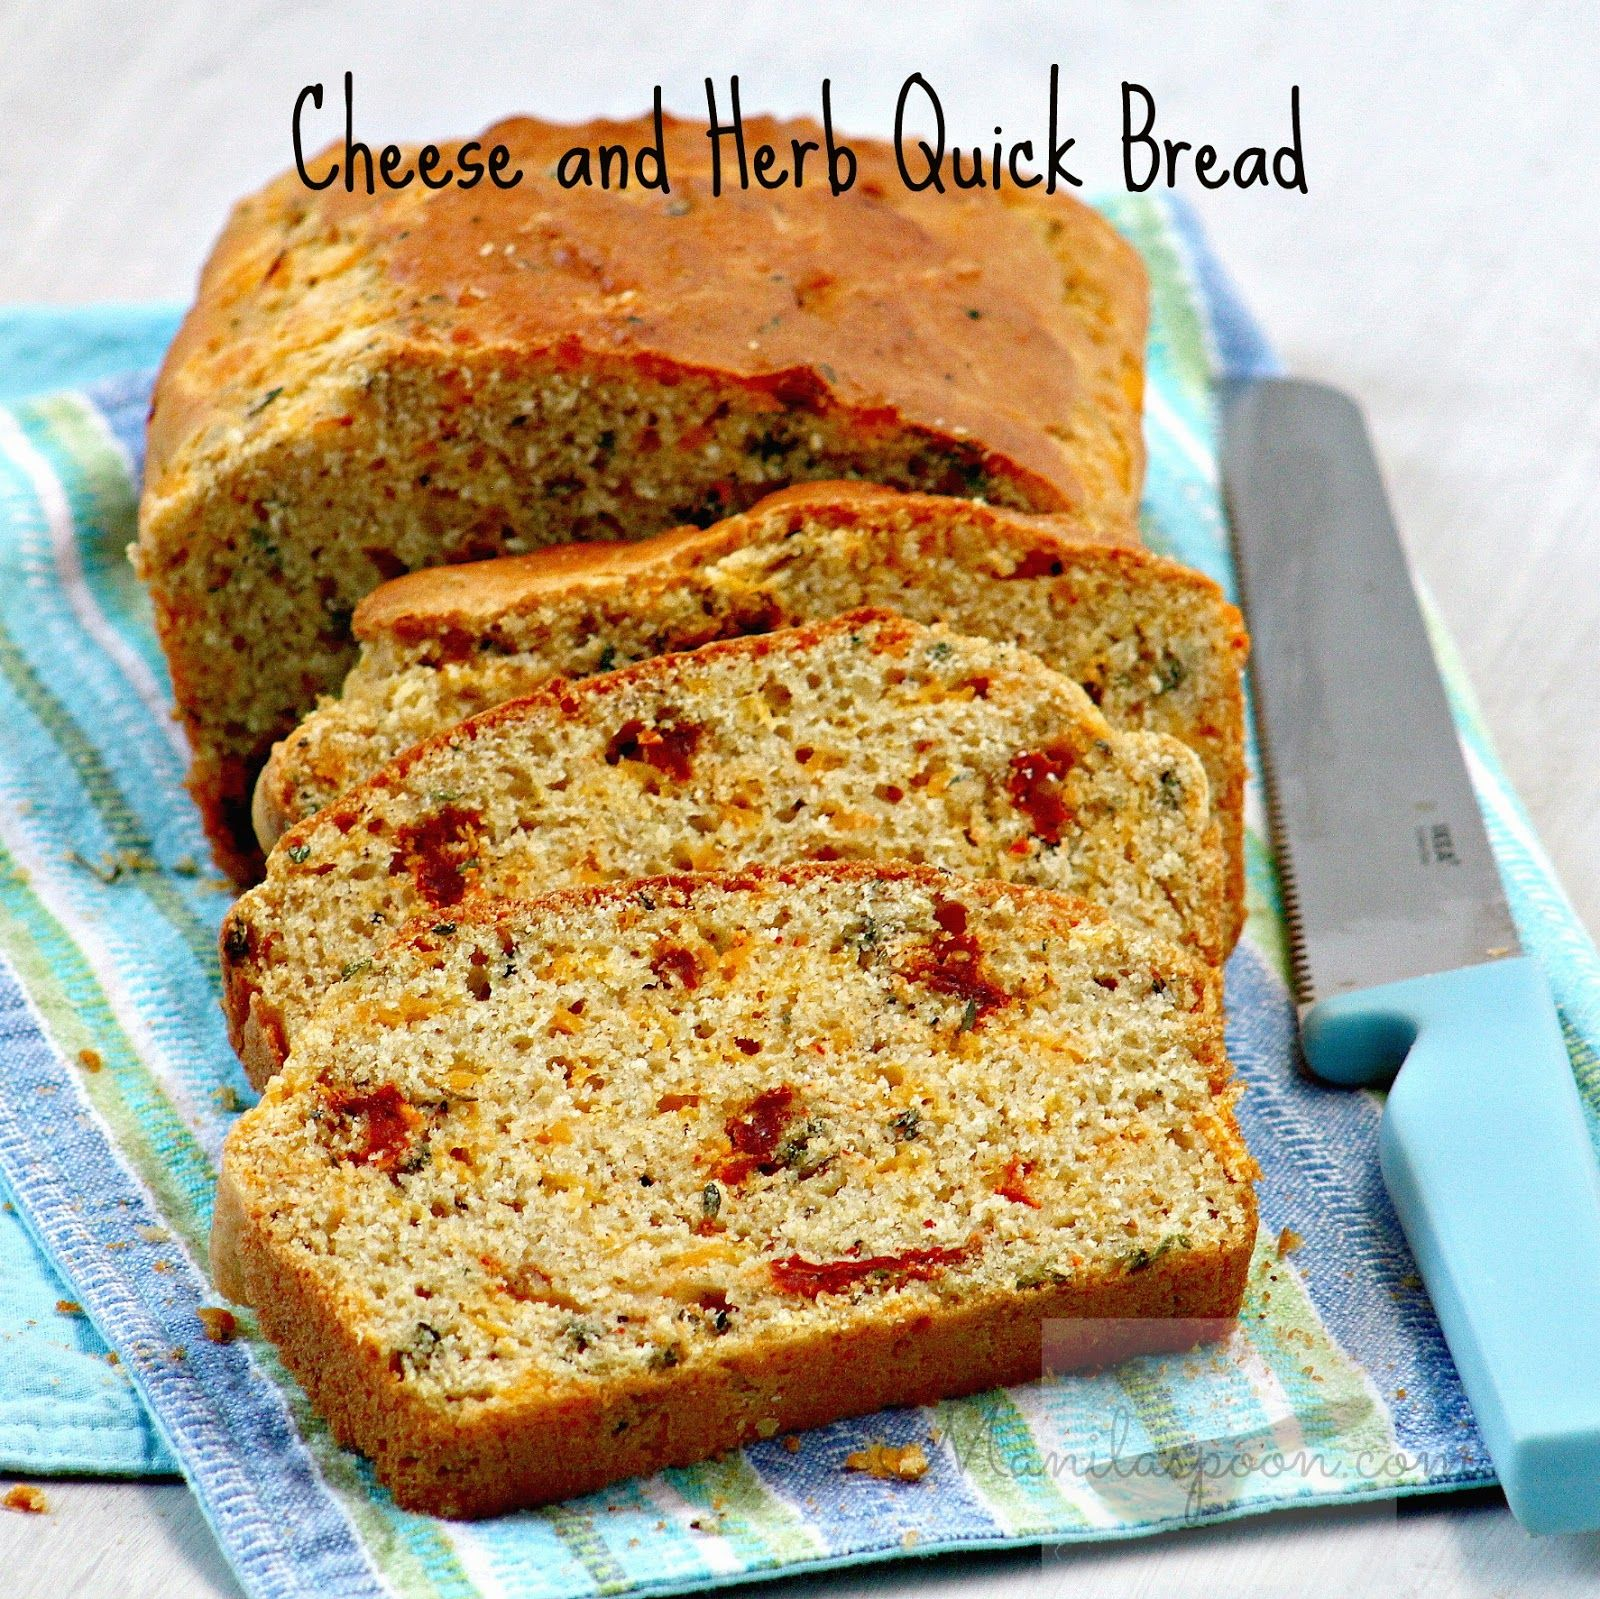 CHEESE, HERB and SUN-DRIED TOMATO QUICK BREAD - this savory bread packs in a lot of flavor! Great as a side dish or as a savory accompaniment to your tea! Enjoy!